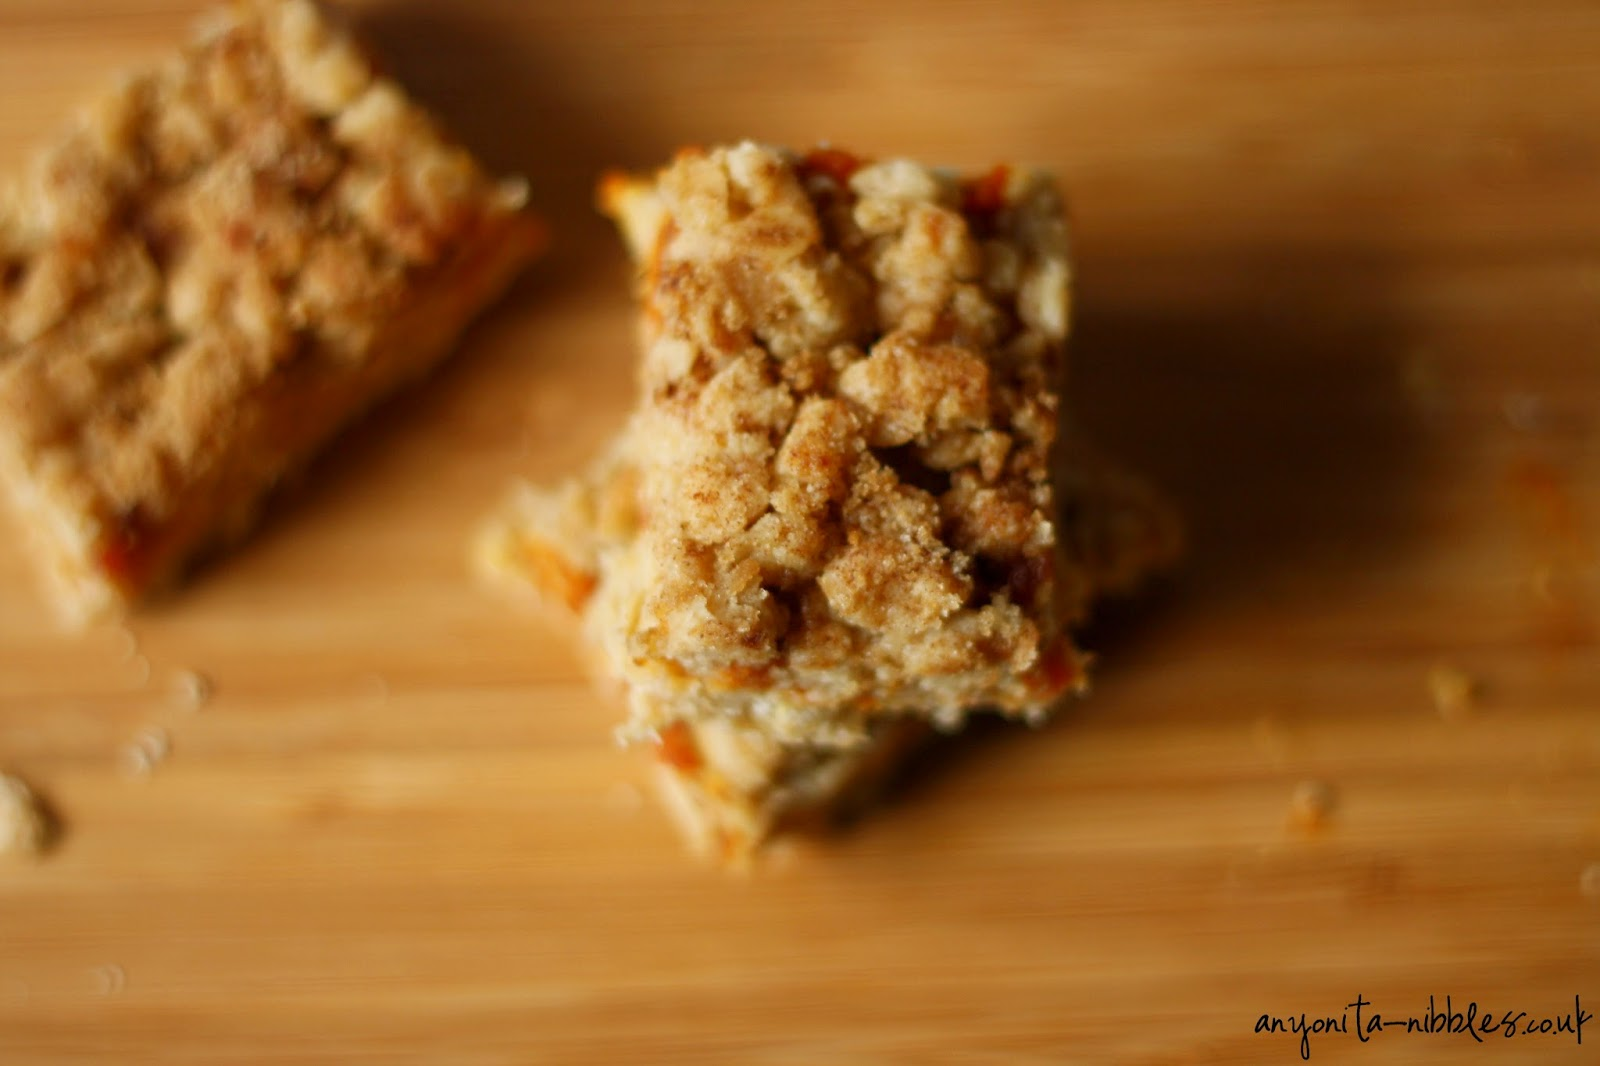 Three gluten free pumpkin oat bars, perfect for Thanksgiving breakfast! From Anyonita-nibbles.co.uk